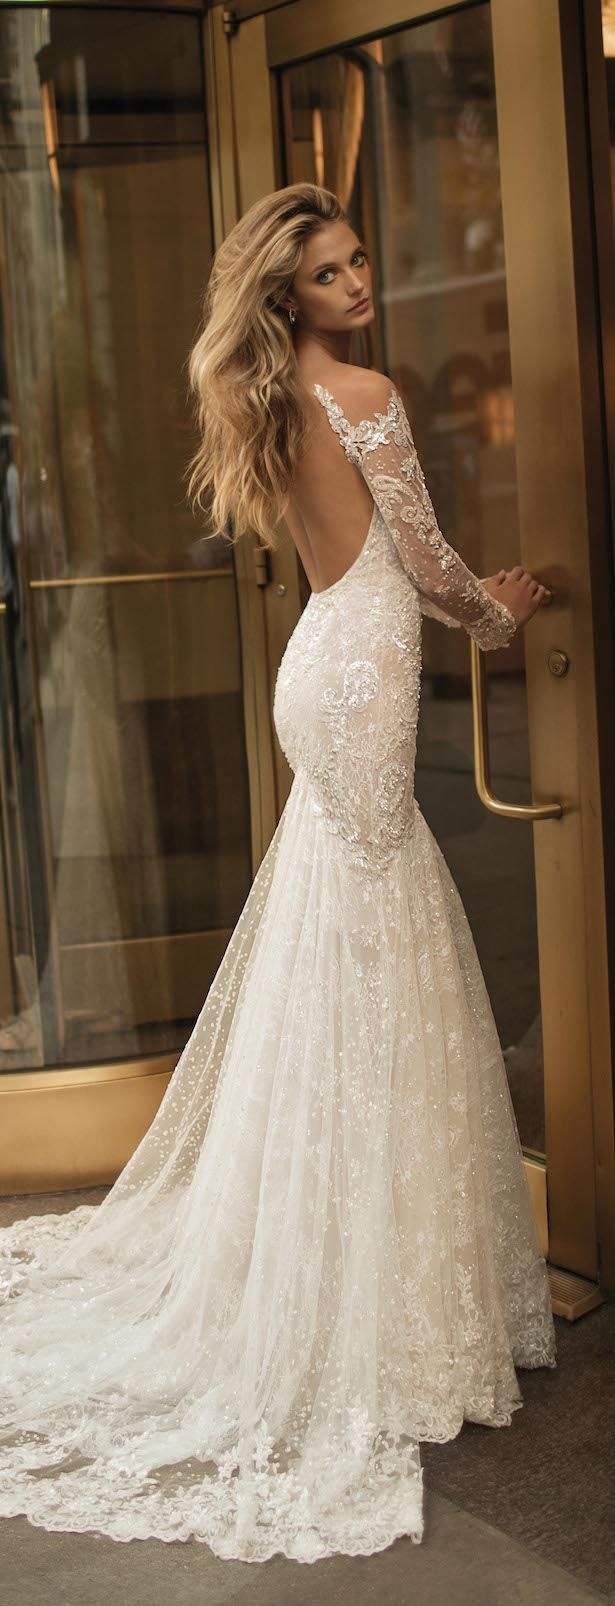 Best 25  2nd wedding dresses ideas on Pinterest | Vintage wedding ...